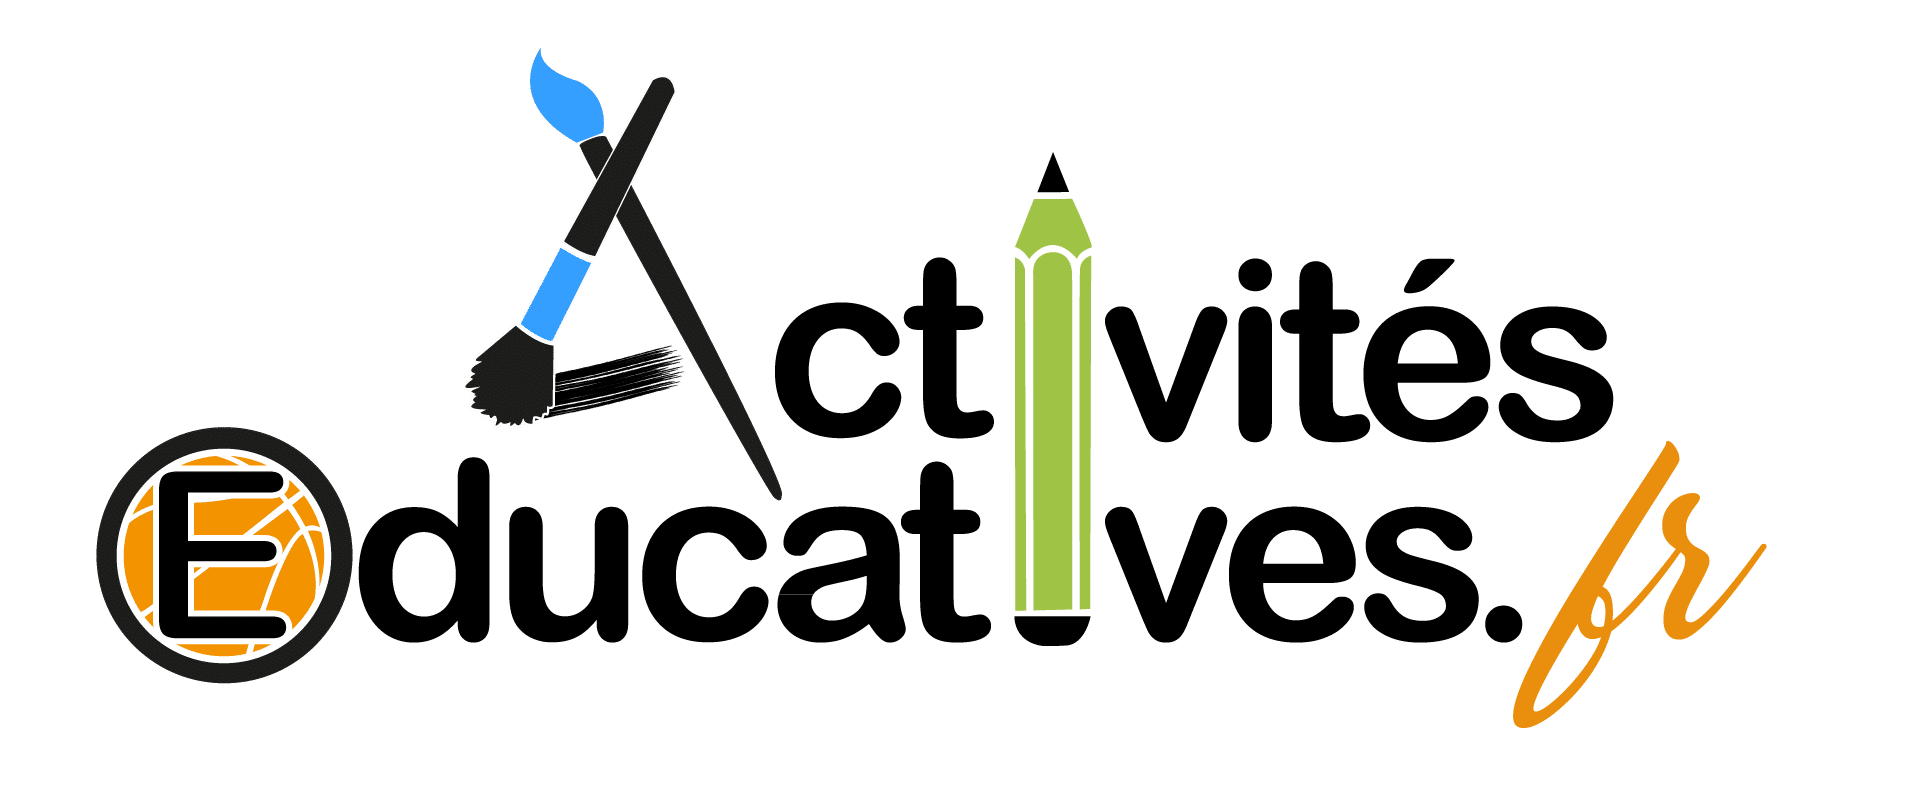 Logo activites-educatives.fr